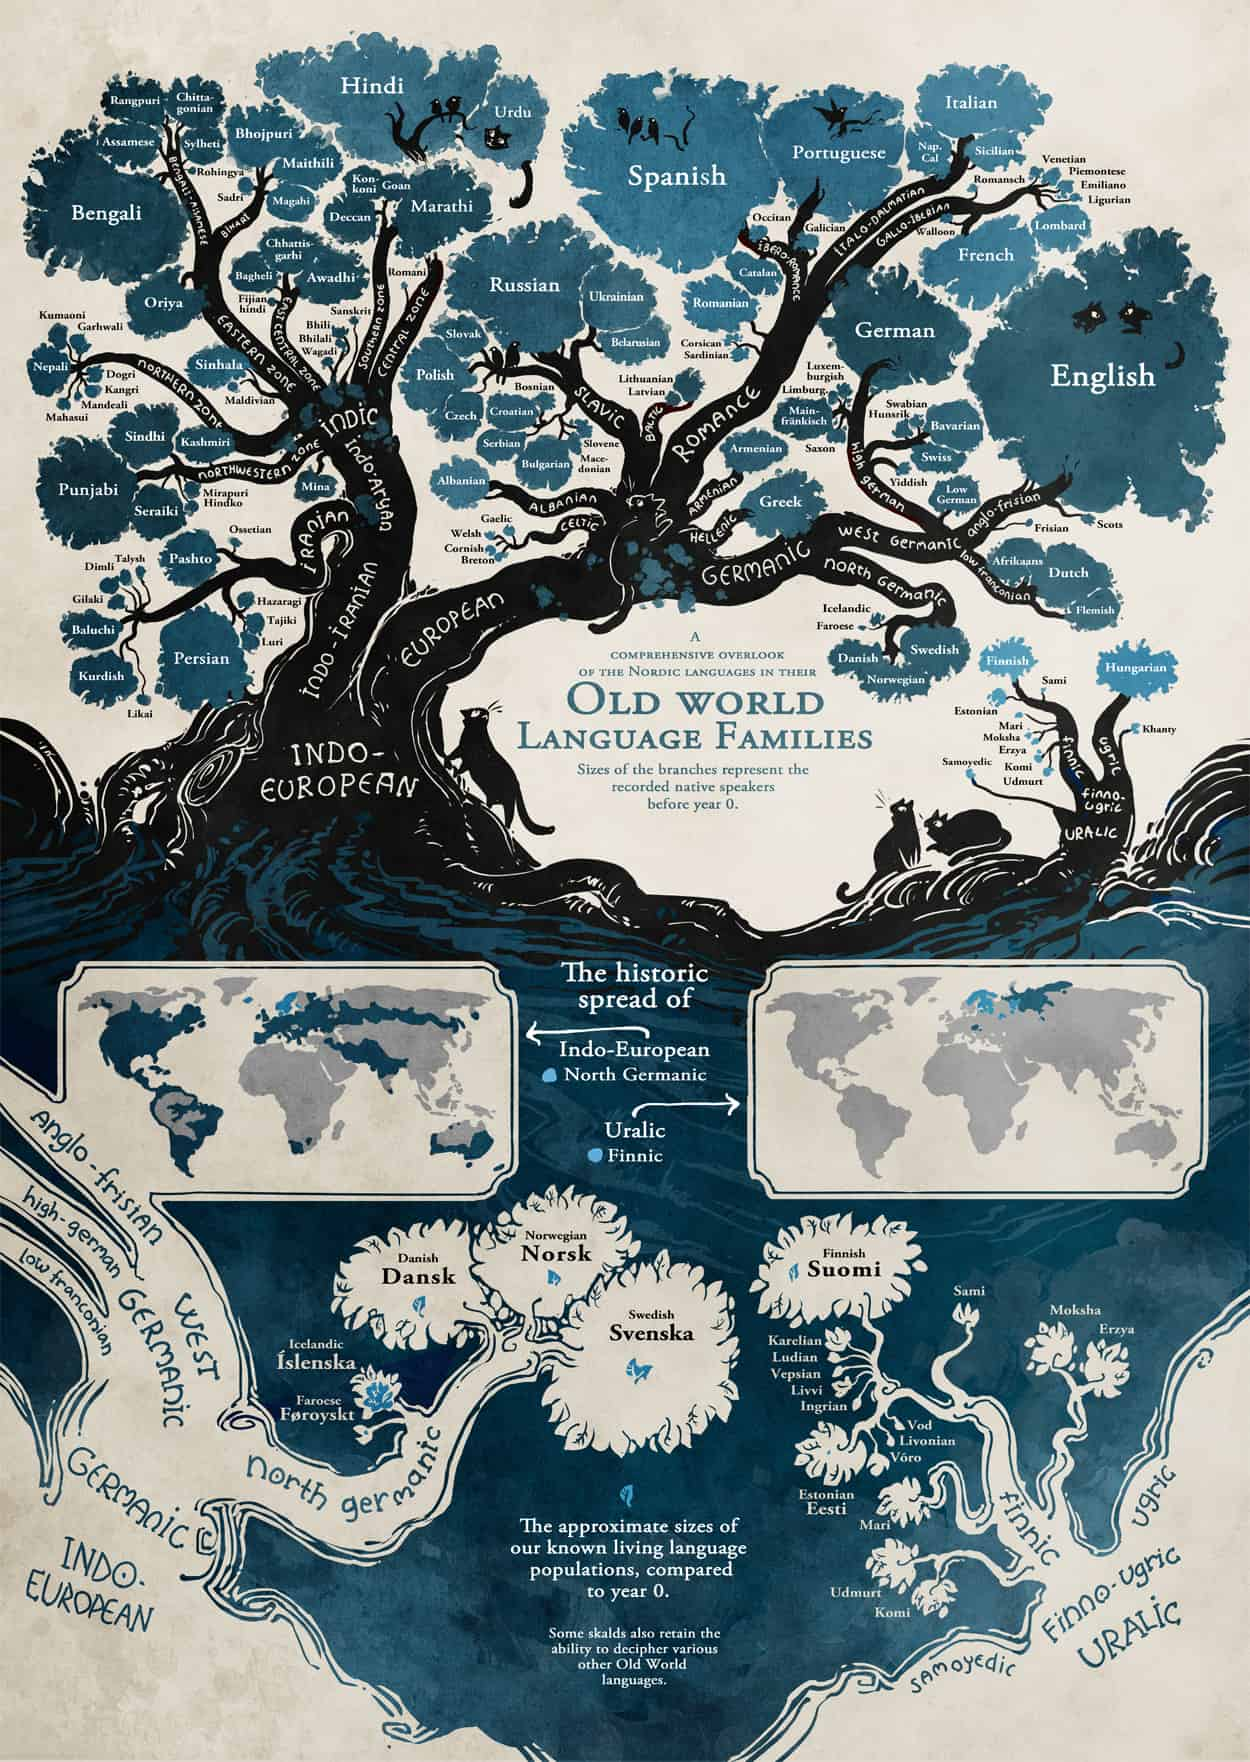 Old World Language Families Daily Infographic - World languages map